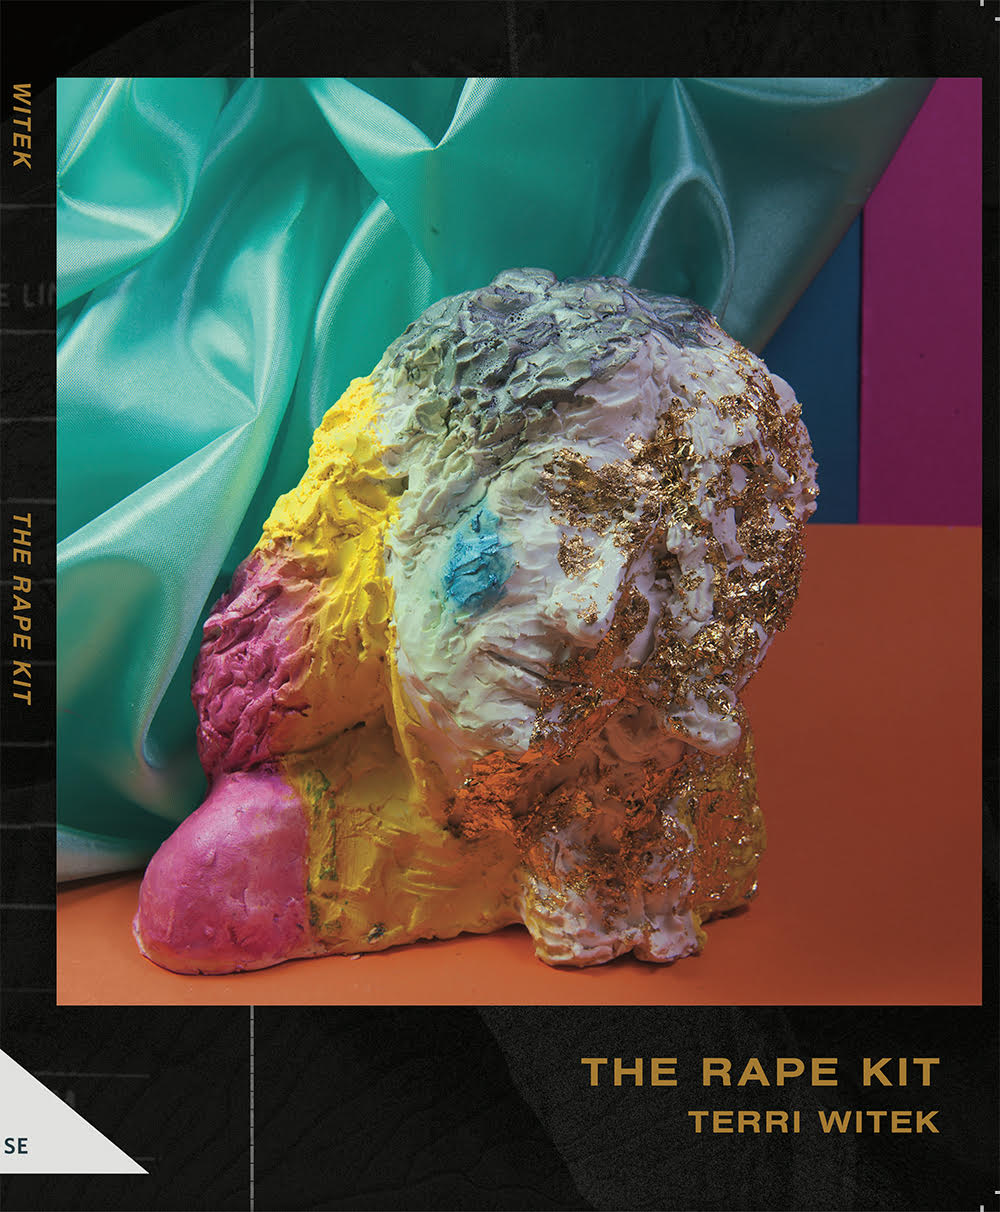 the rape kit